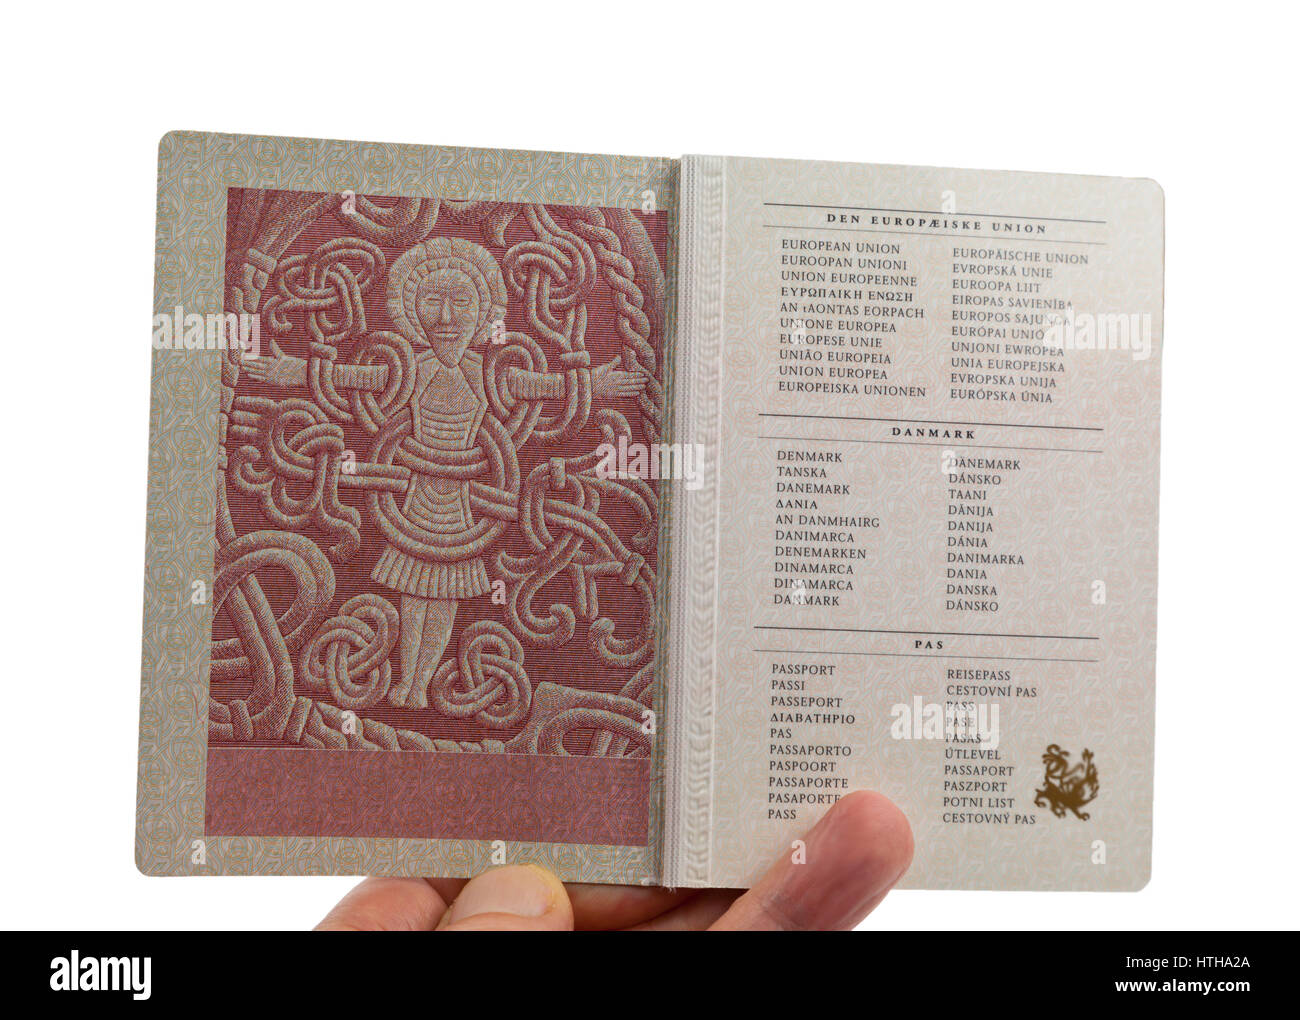 Page 2 in the Danish passport displays the figure of Christ from the Jelling rune stone raised by viking king Harald - Stock Image